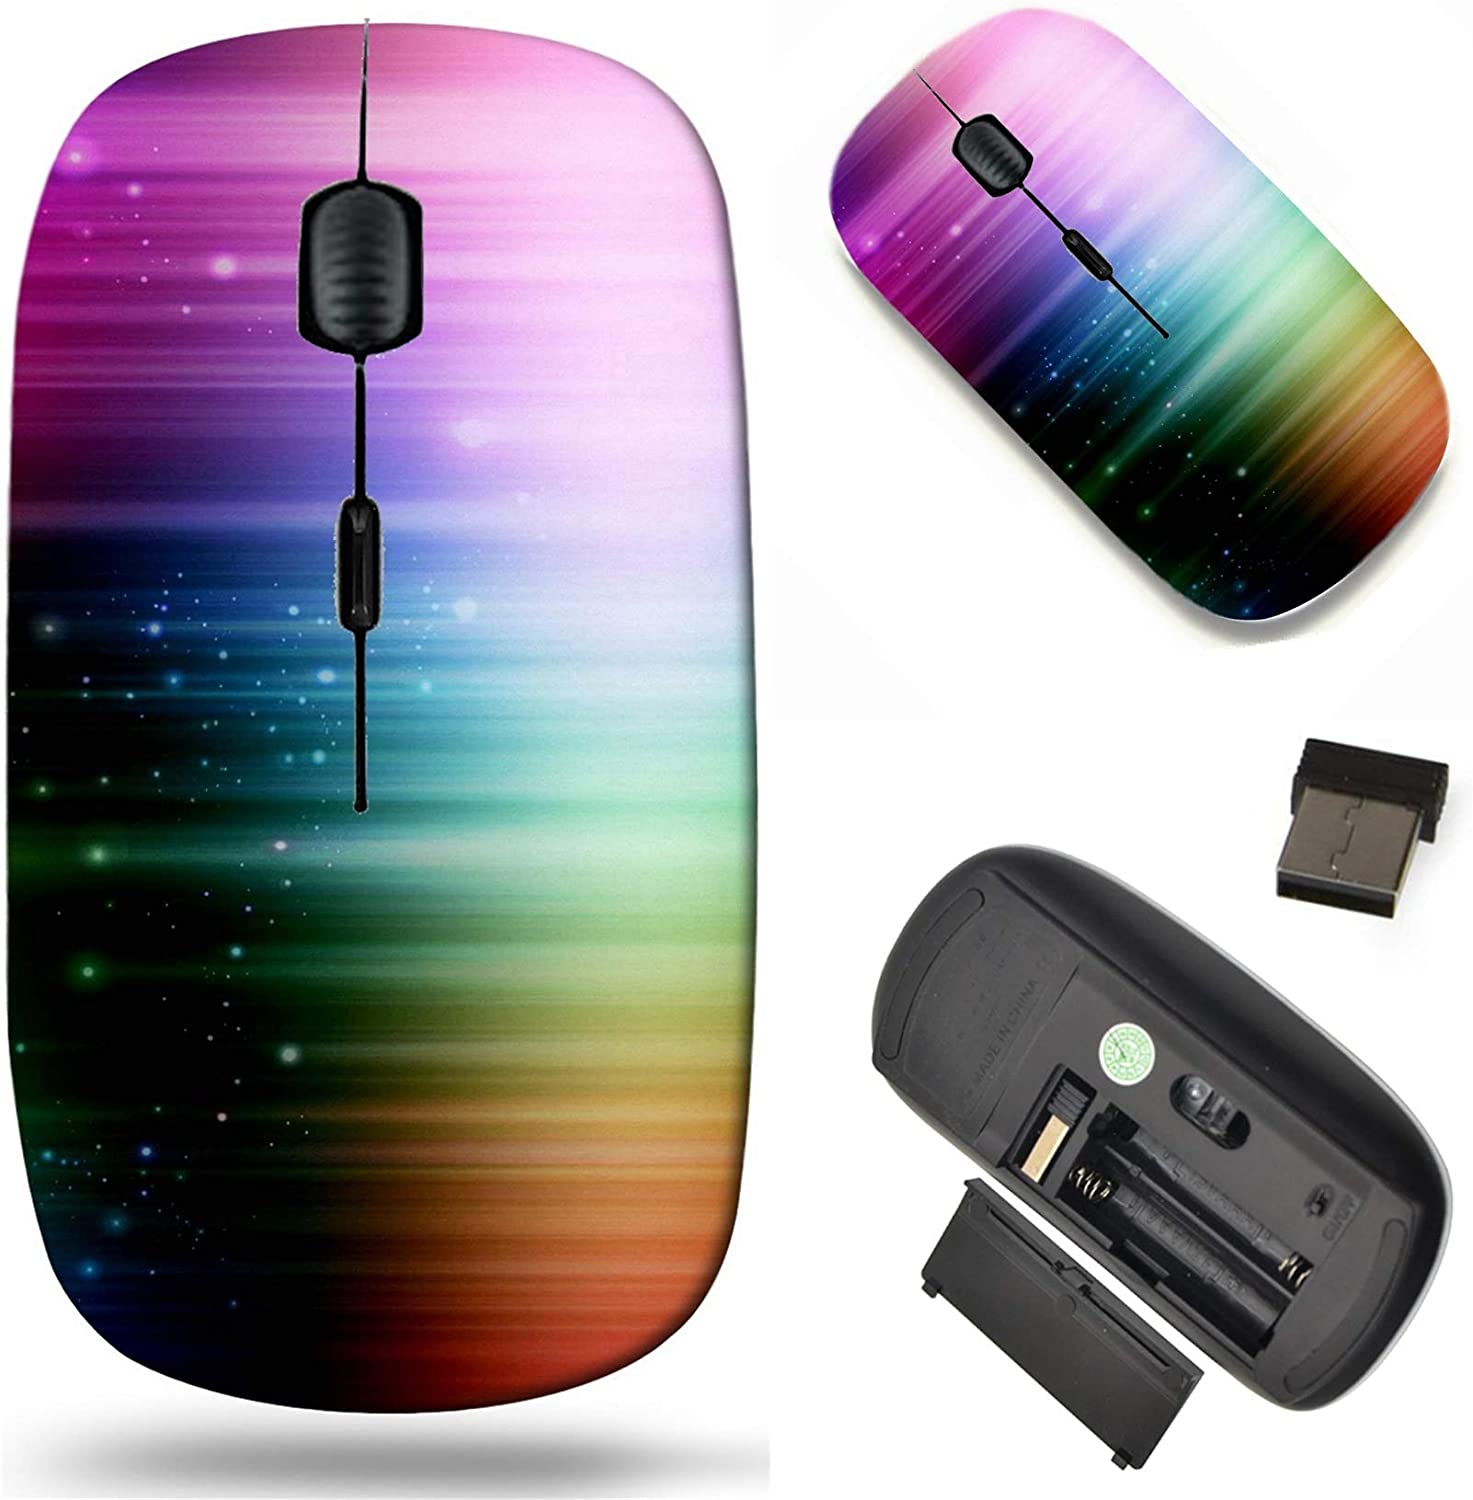 Wireless Mouse 2.4G Black Base Travel Wireless Mice with USB Receiver, Noiseless and Silent Click with 1000 DPI for Notebook pc Laptop Computer MacBook Image of Background Abstract Colorful Black des